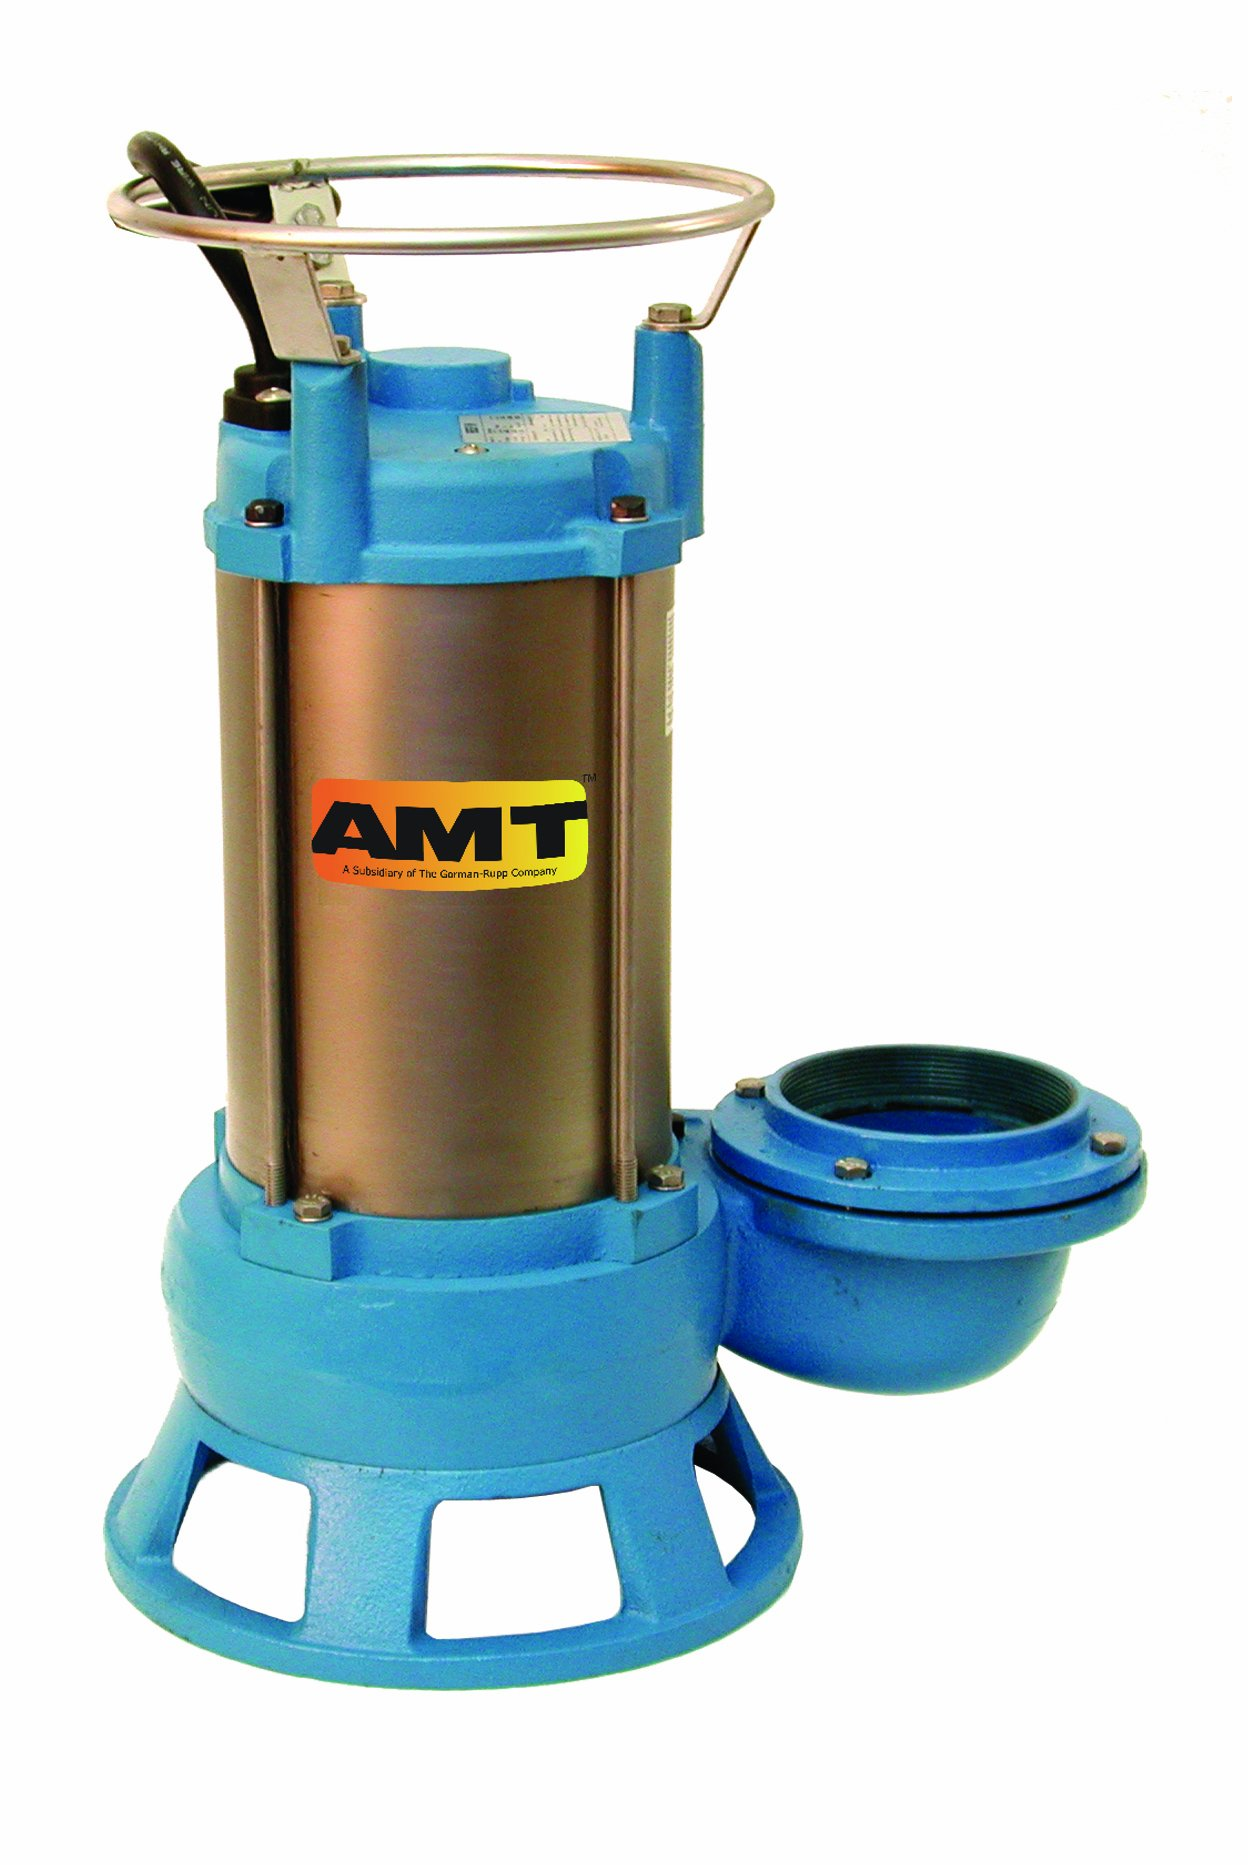 AMT 576C-95 CI Submersible Shredder Sewage Pump, Double Mechanical Seal, 3'' Out, 2 hp, 3 Phase Motor